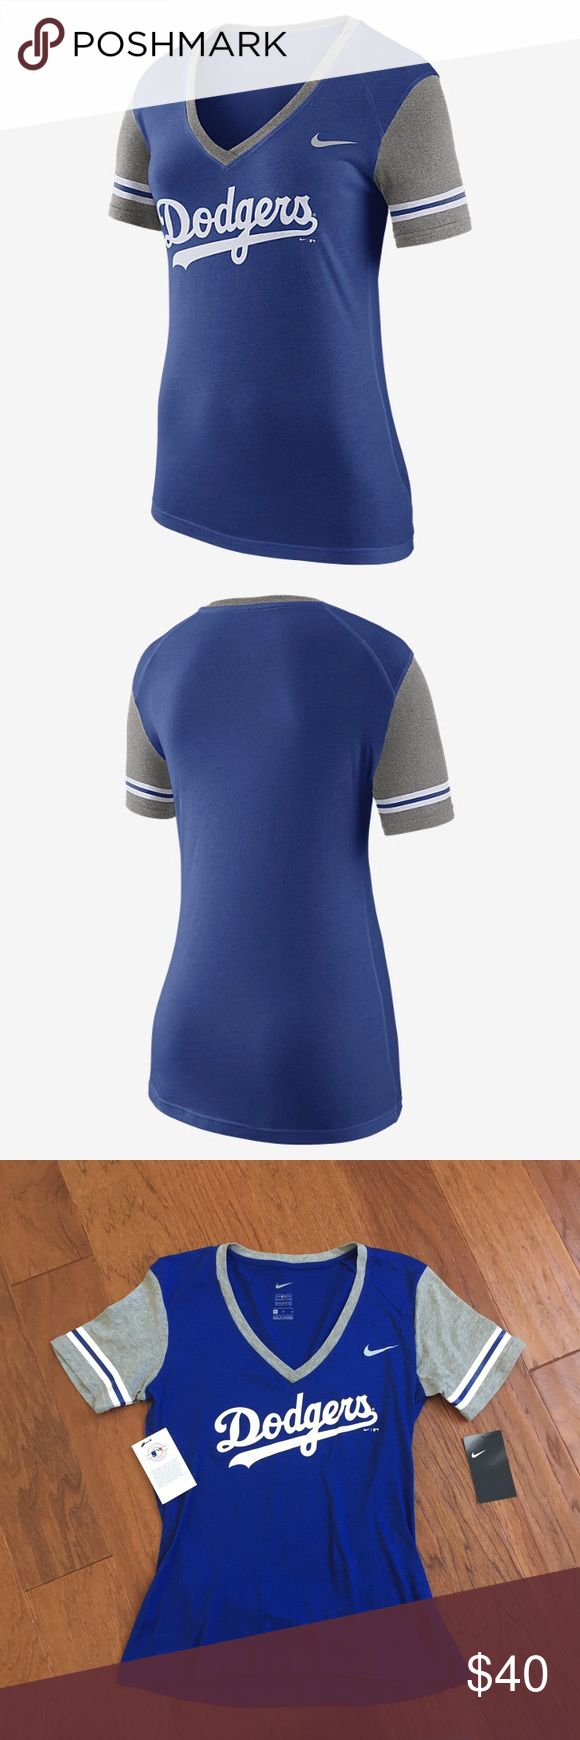 Nike Dodgers Top Brand new with tags. Nike women's shirt sleeve top, royal blue with grey and white detail. No trades, no holds, please use the offer button for offers, and feel free to ask questions 😊 Nike Tops Tees - Short Sleeve